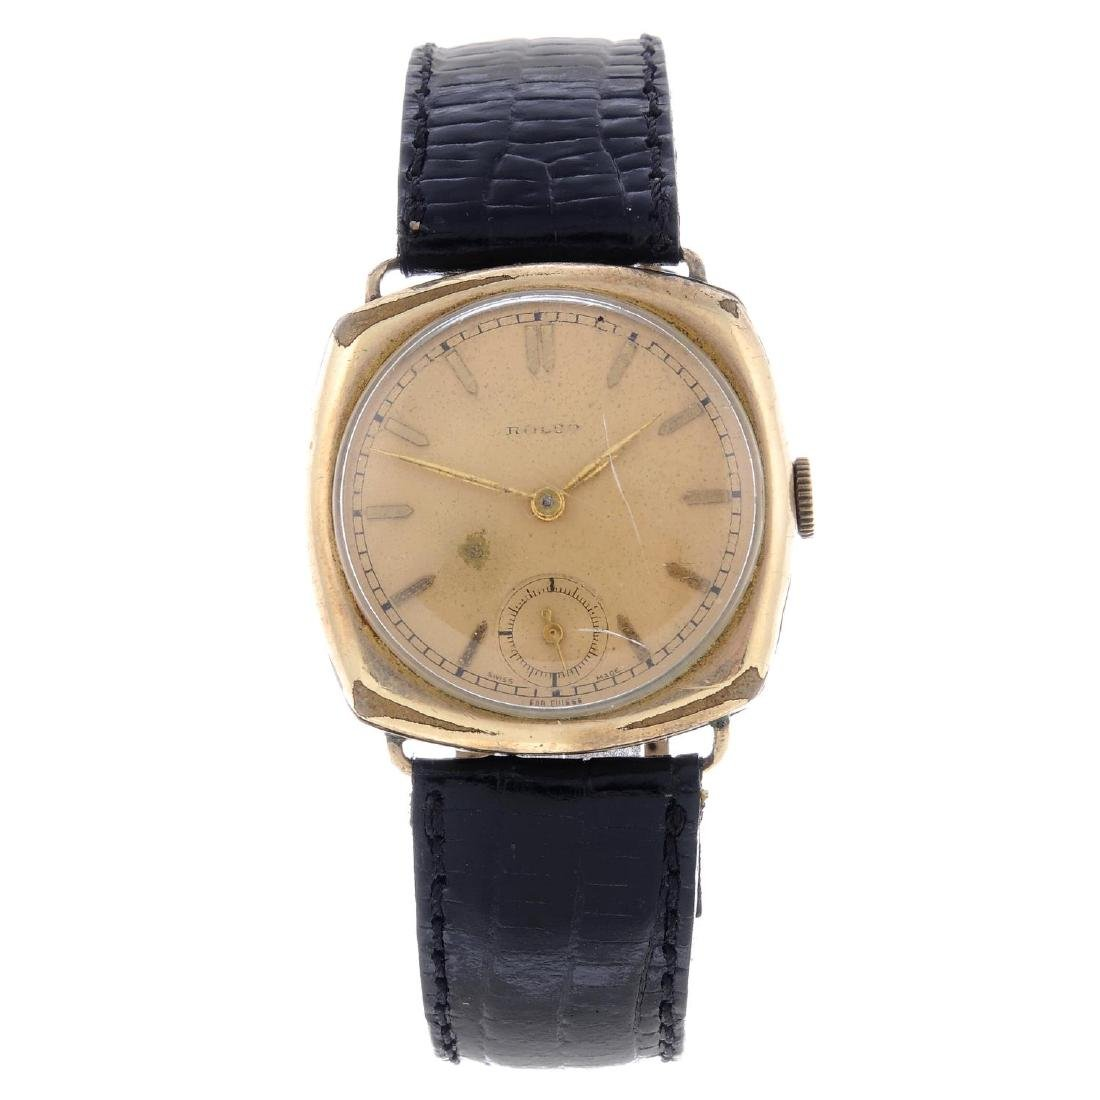 ROLCO - a gentleman's wrist watch. Gold plated case.